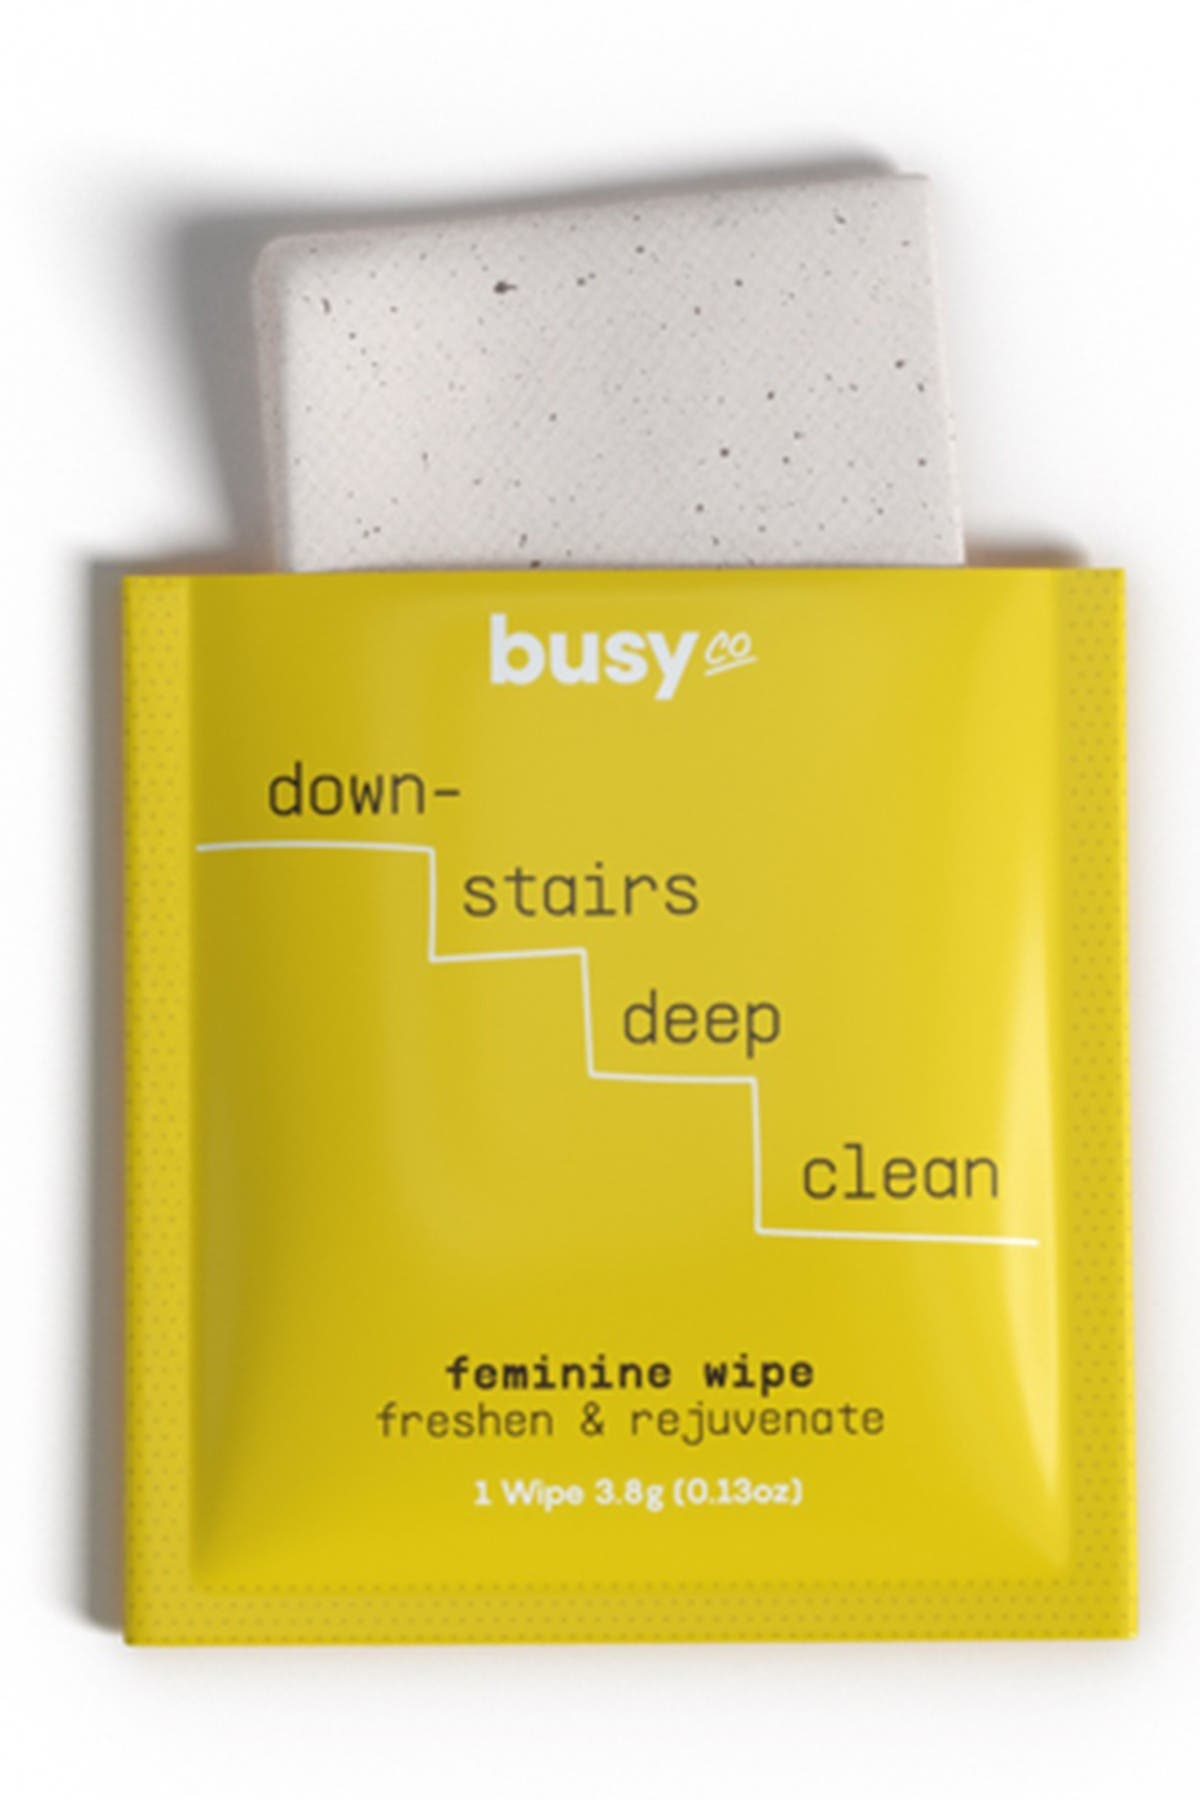 Image of Busy Co GLOW Feminine Wipes with Primrose Oil & Coconut